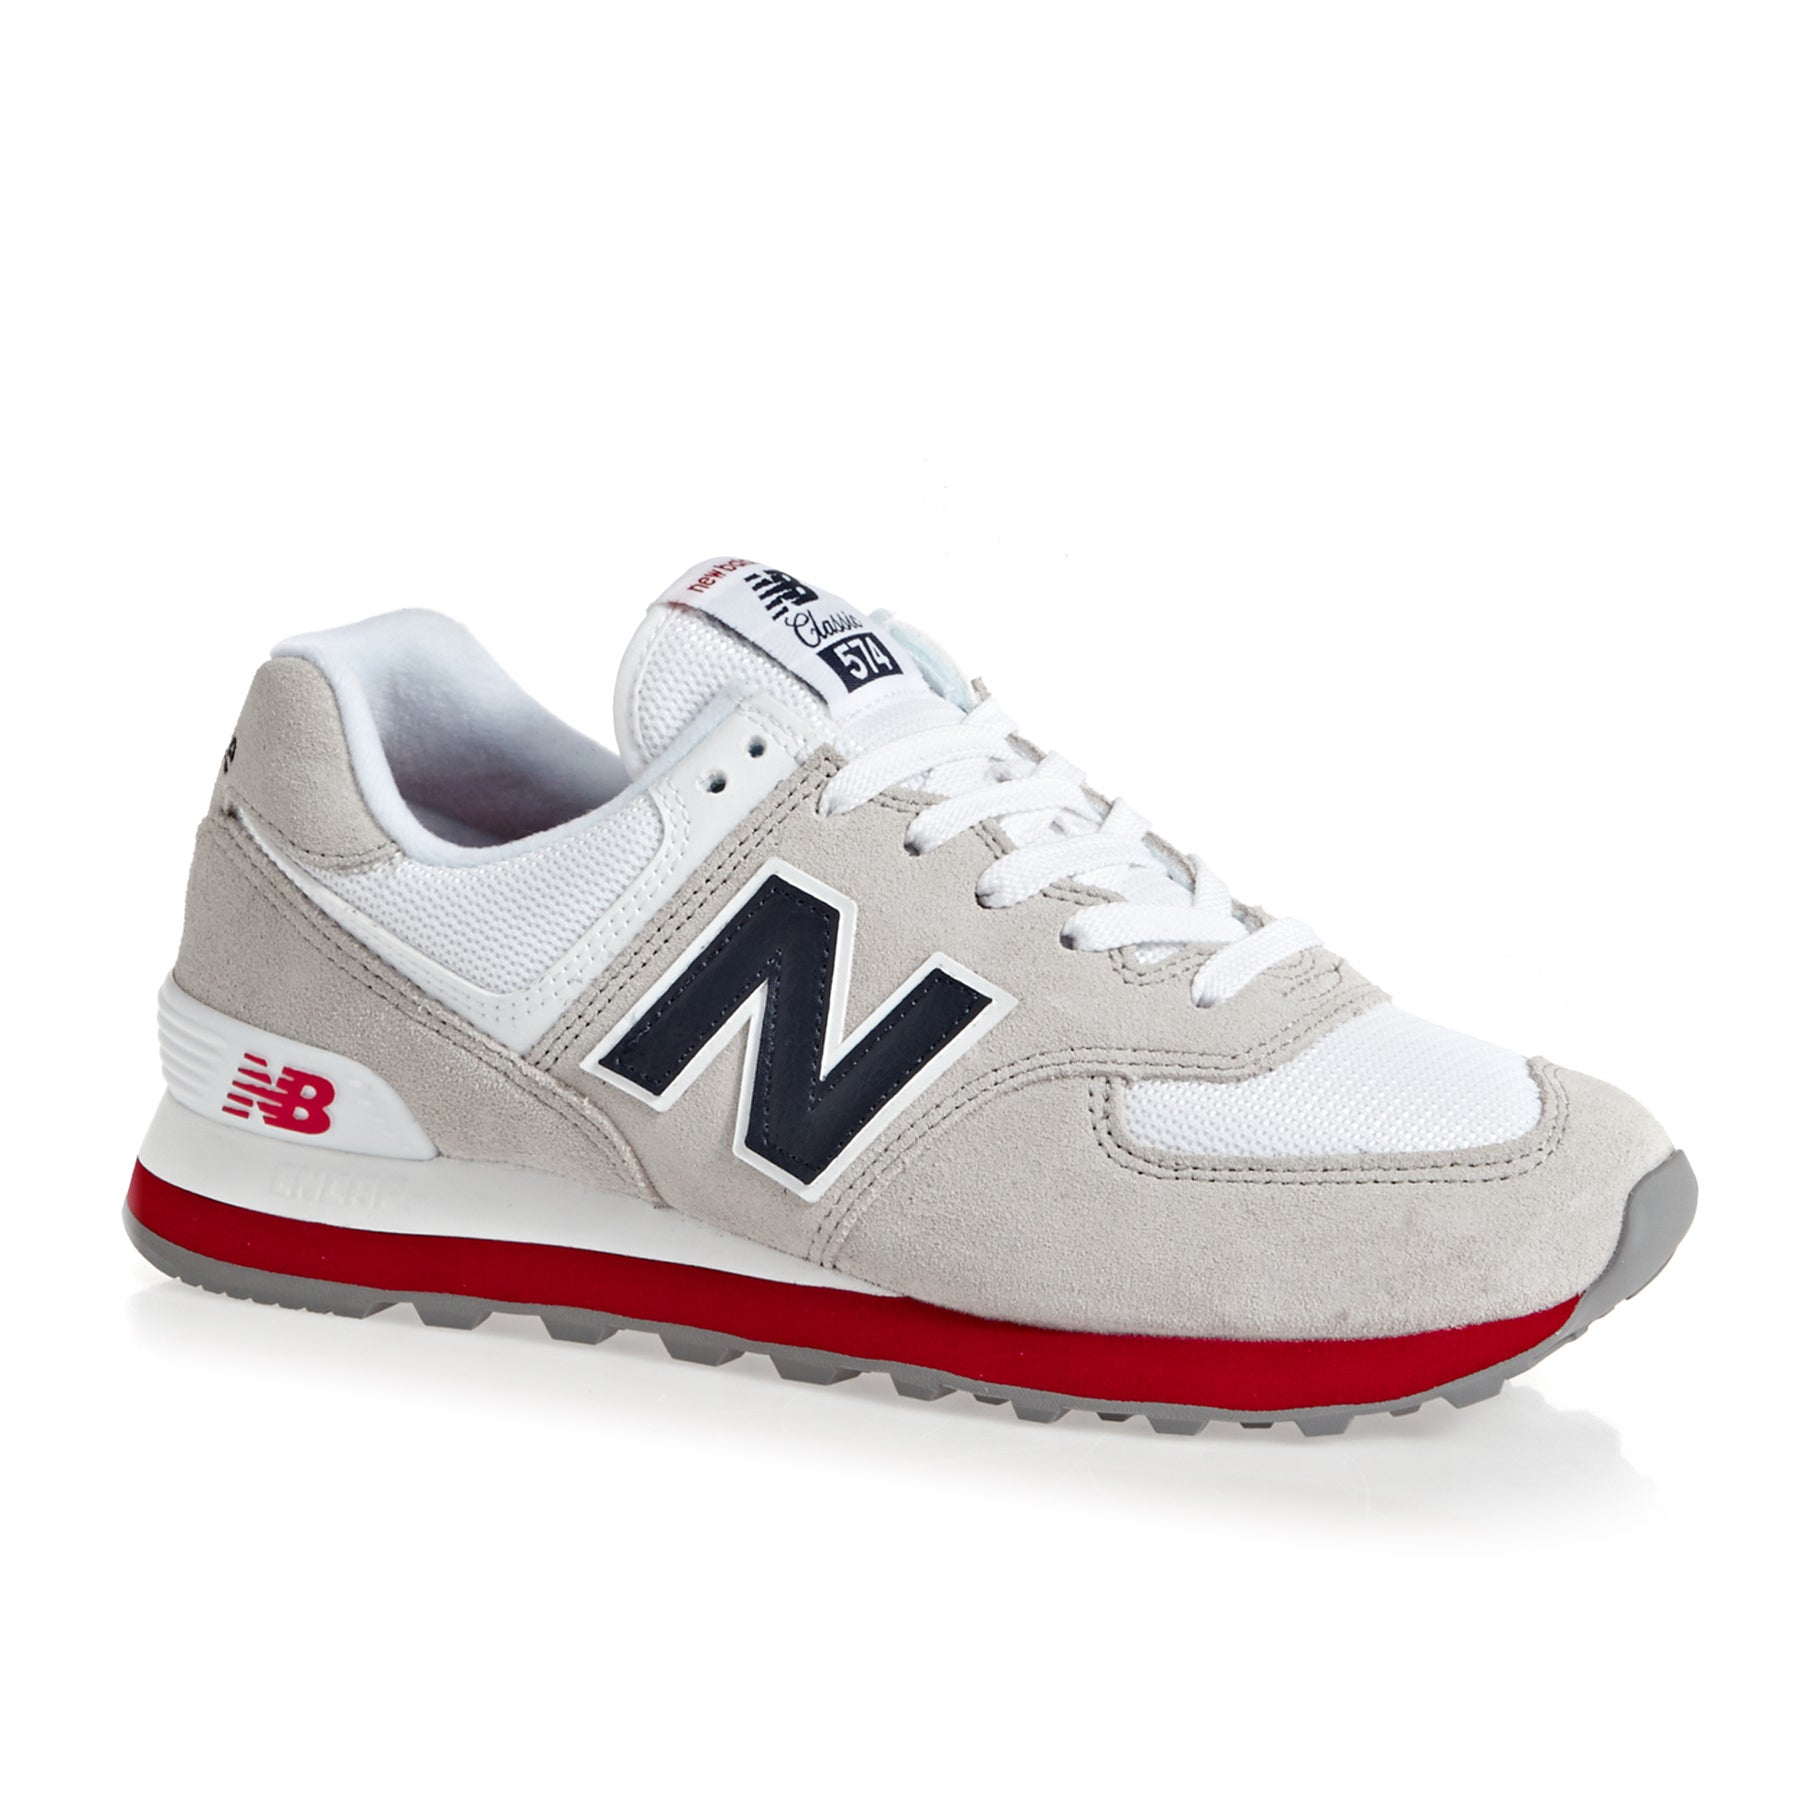 New Balance Ml574 Shoes - Nimbus Cloud